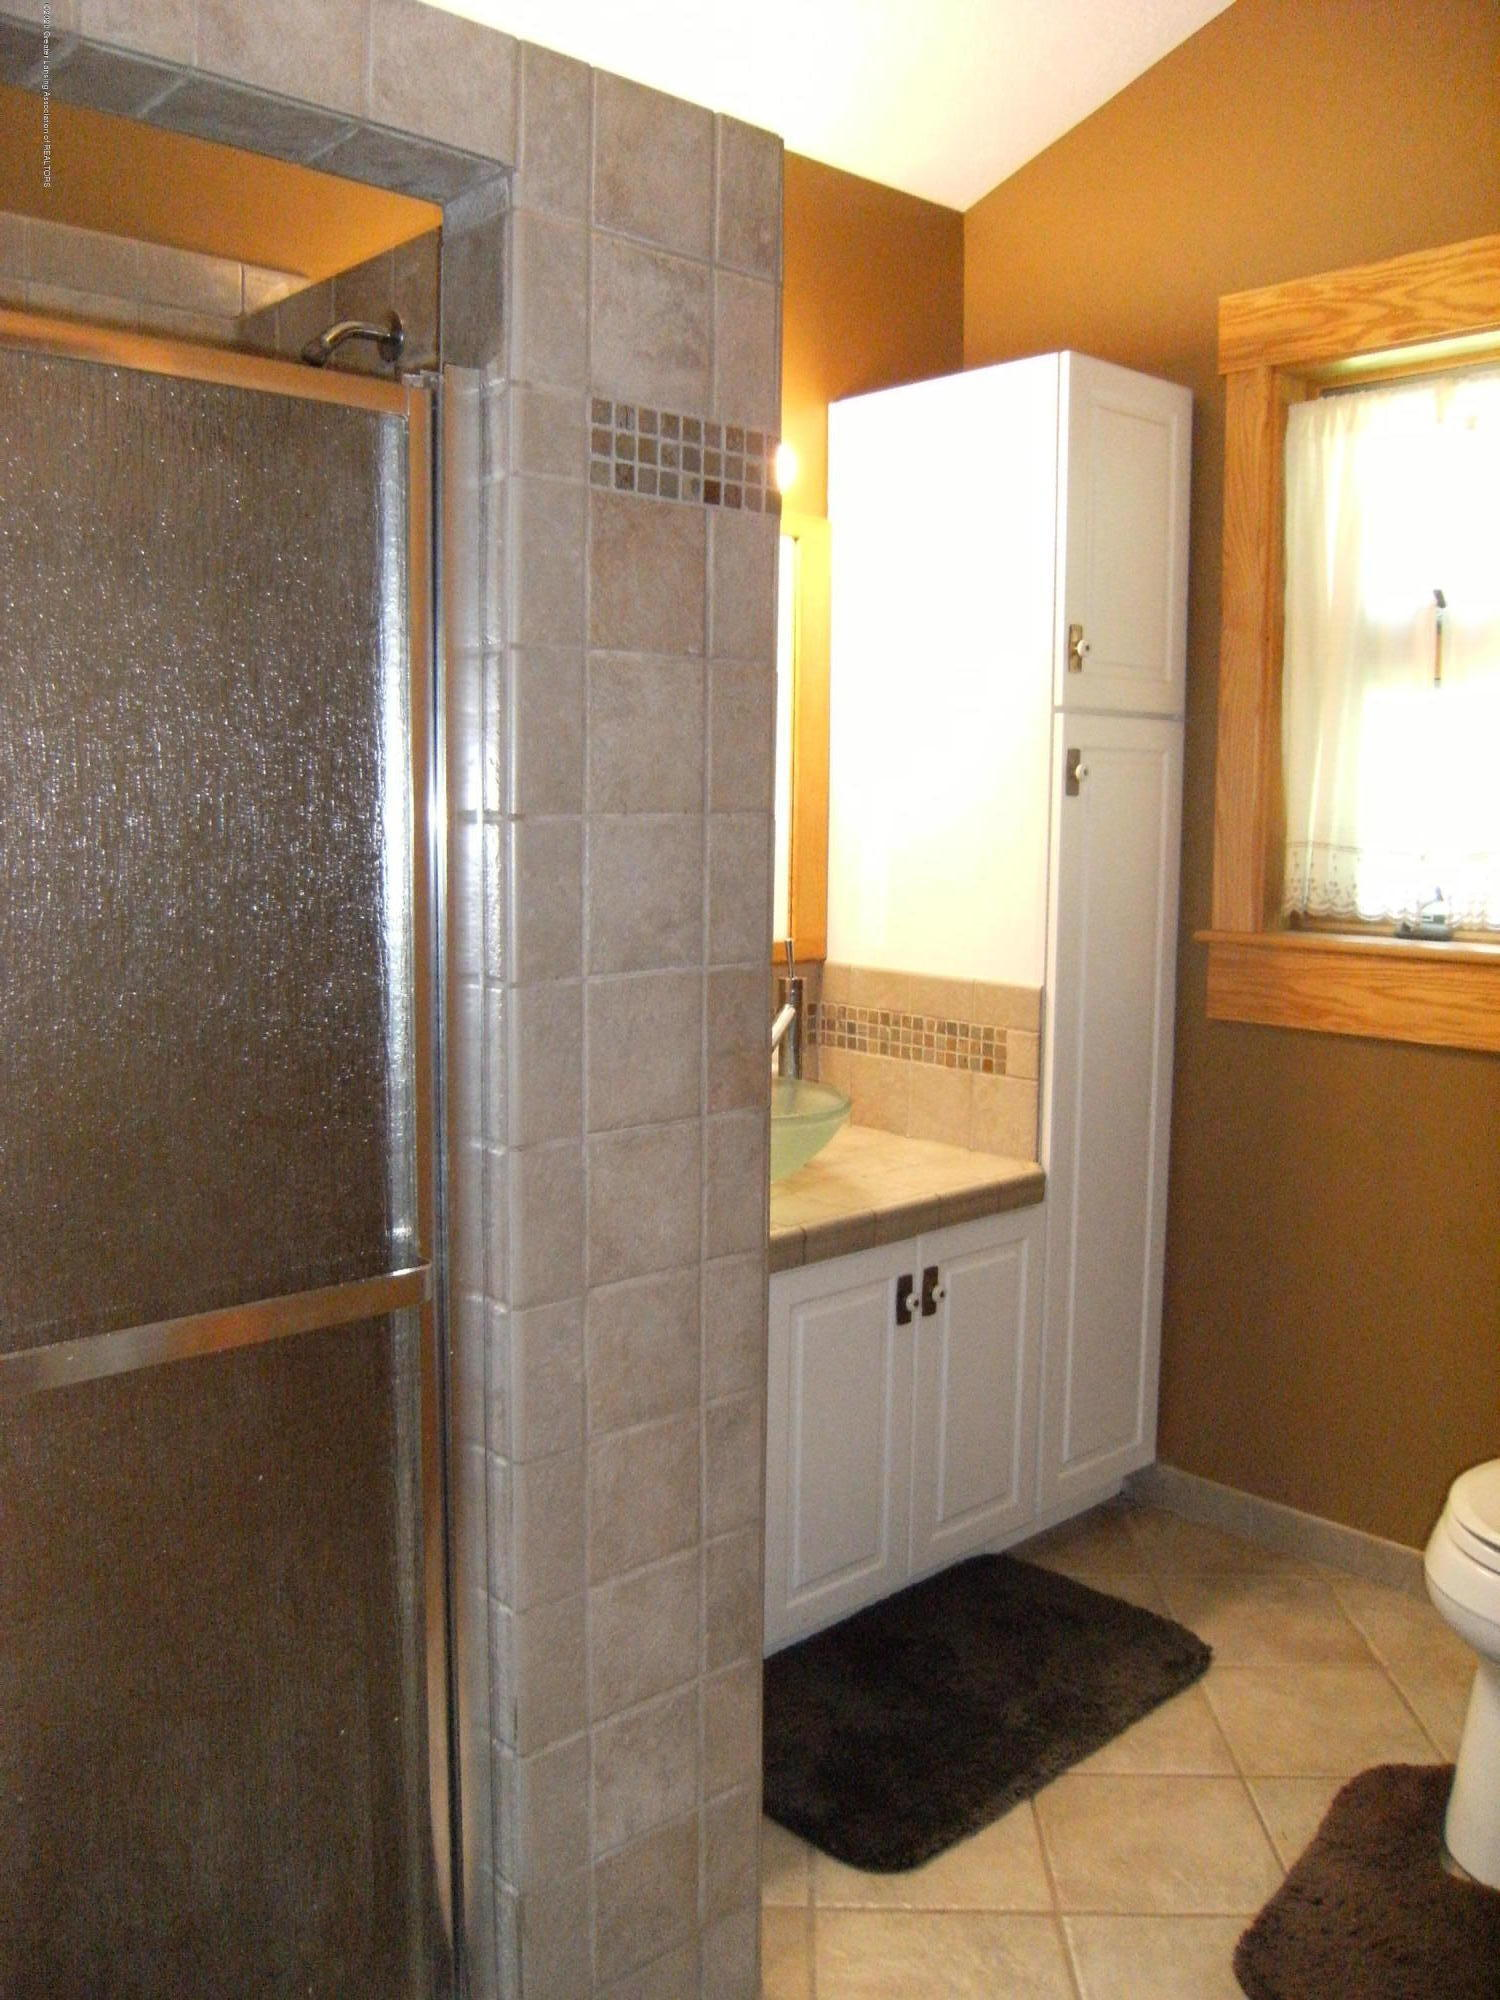 9108 S Krepps Rd - Mother in law bathroom - 20